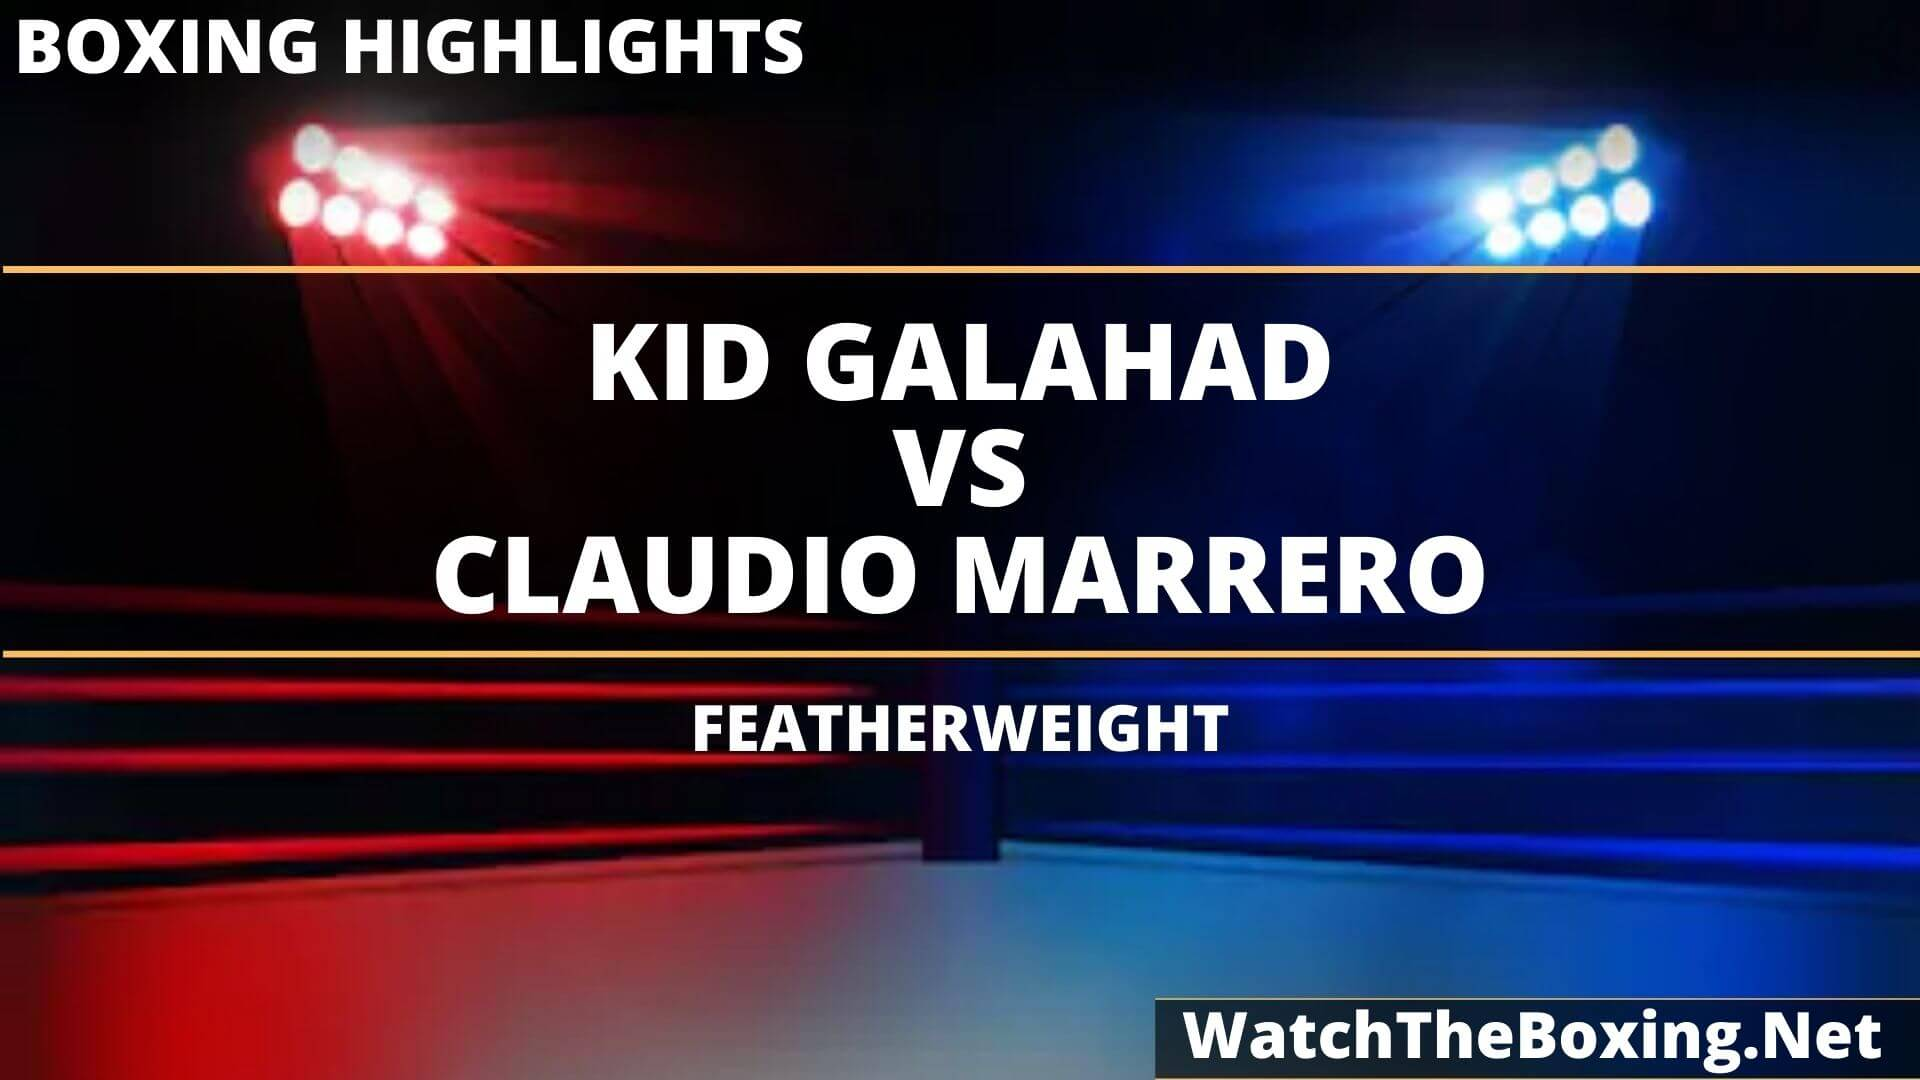 Kid Galahad Vs Claudio Marrero Highlights 2020